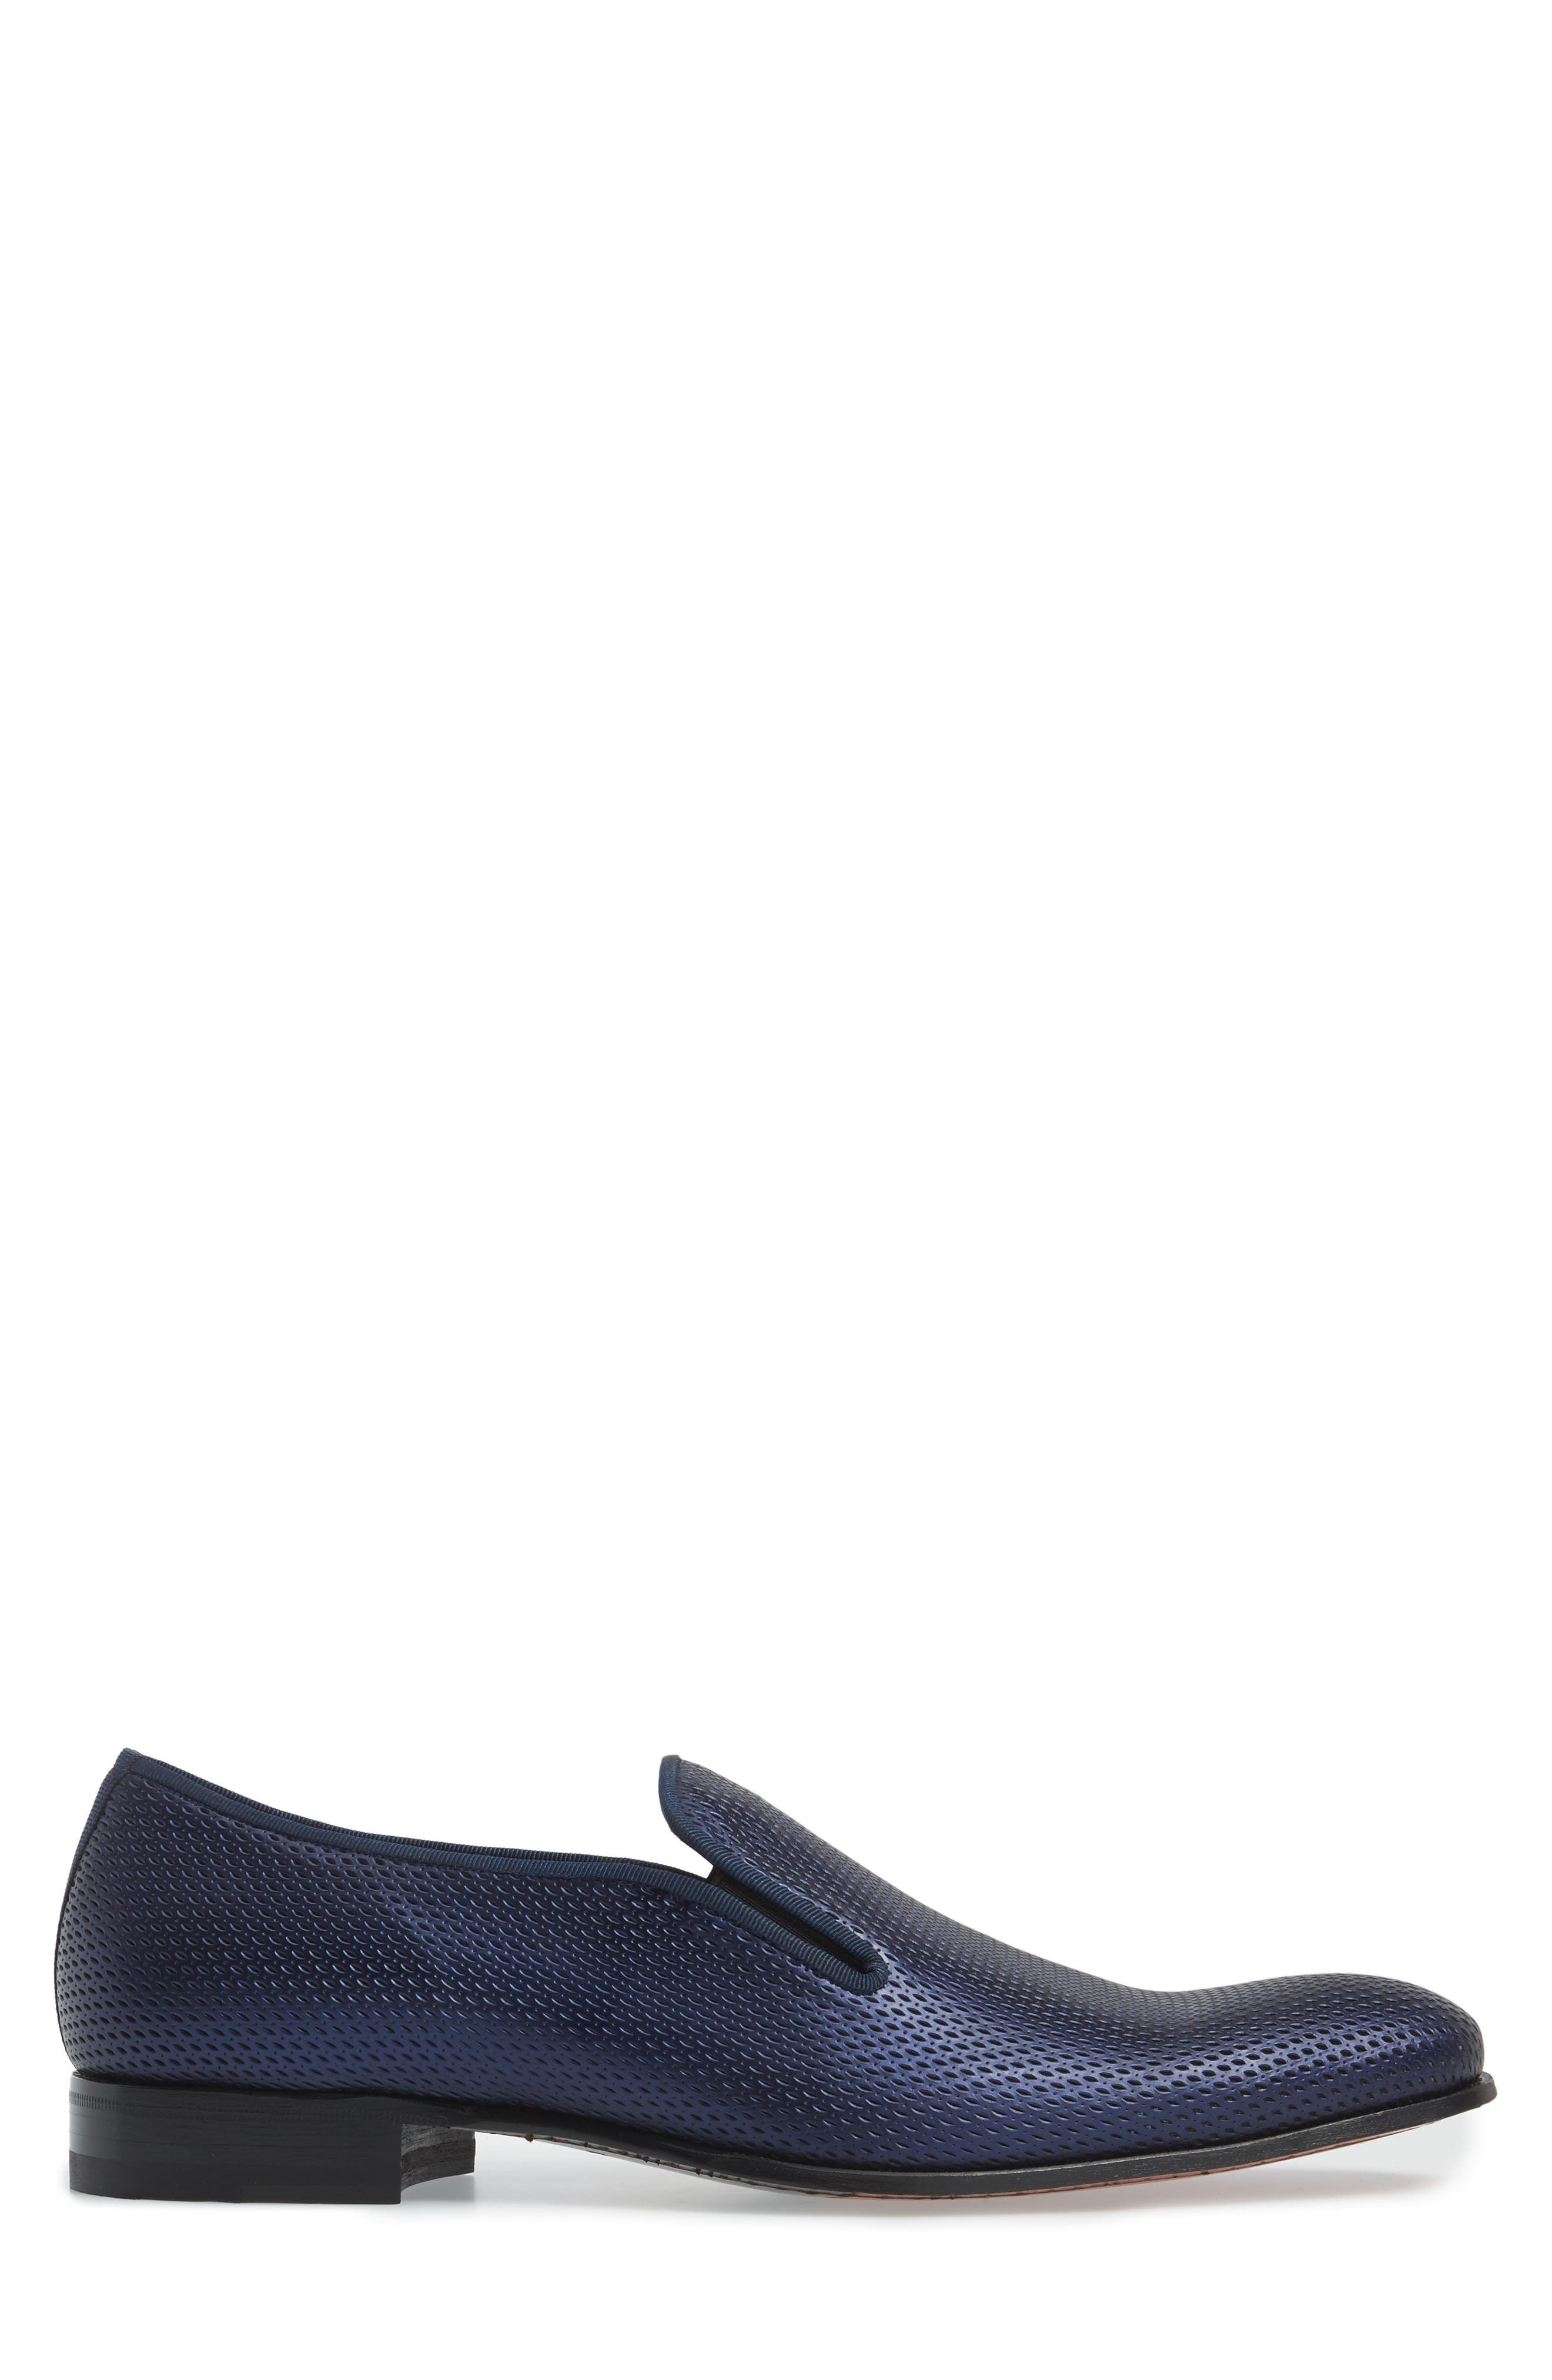 Auguste Venetian Loafer,                             Alternate thumbnail 3, color,